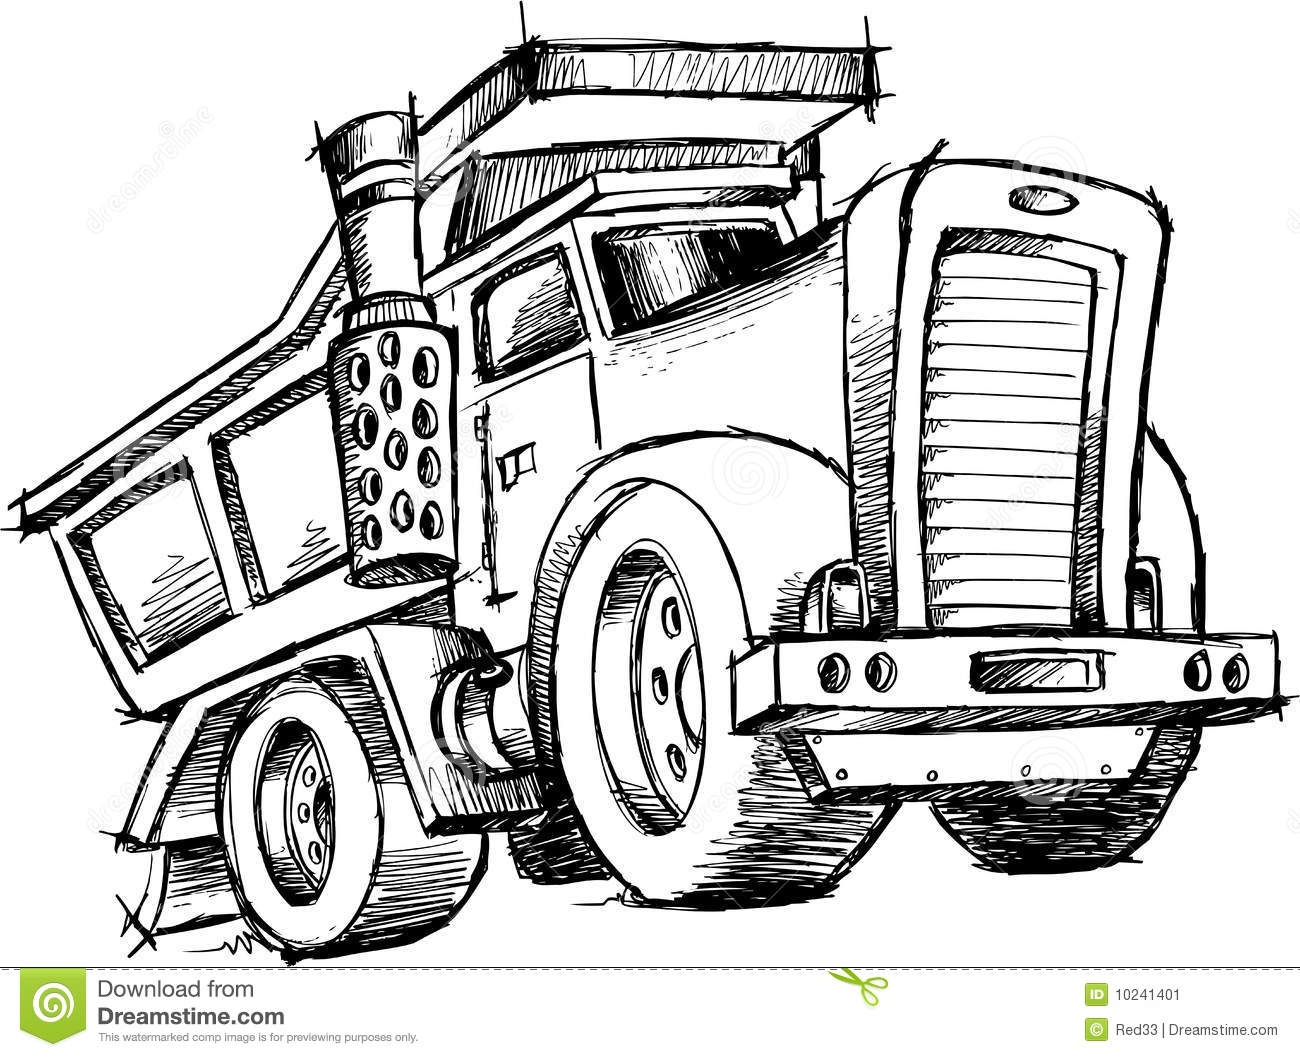 garbage truck coloring page - stock image sketchy dump truck vector image